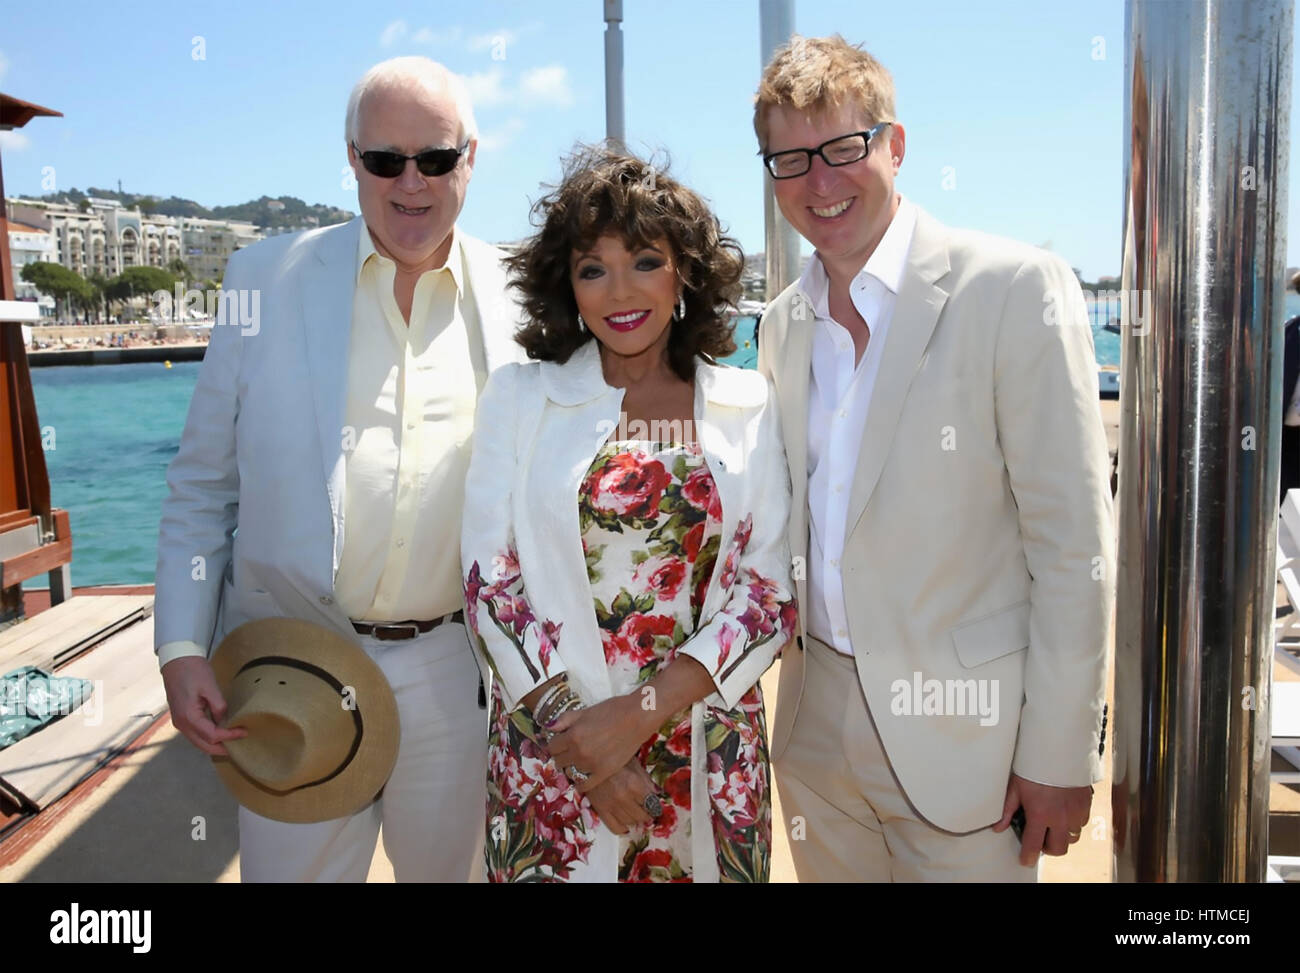 THE TIME OF THEIR LIVES 2017 Universal Pictures film with from left: Tim Rice, Joan Collins, Roger Goldby - Stock Image